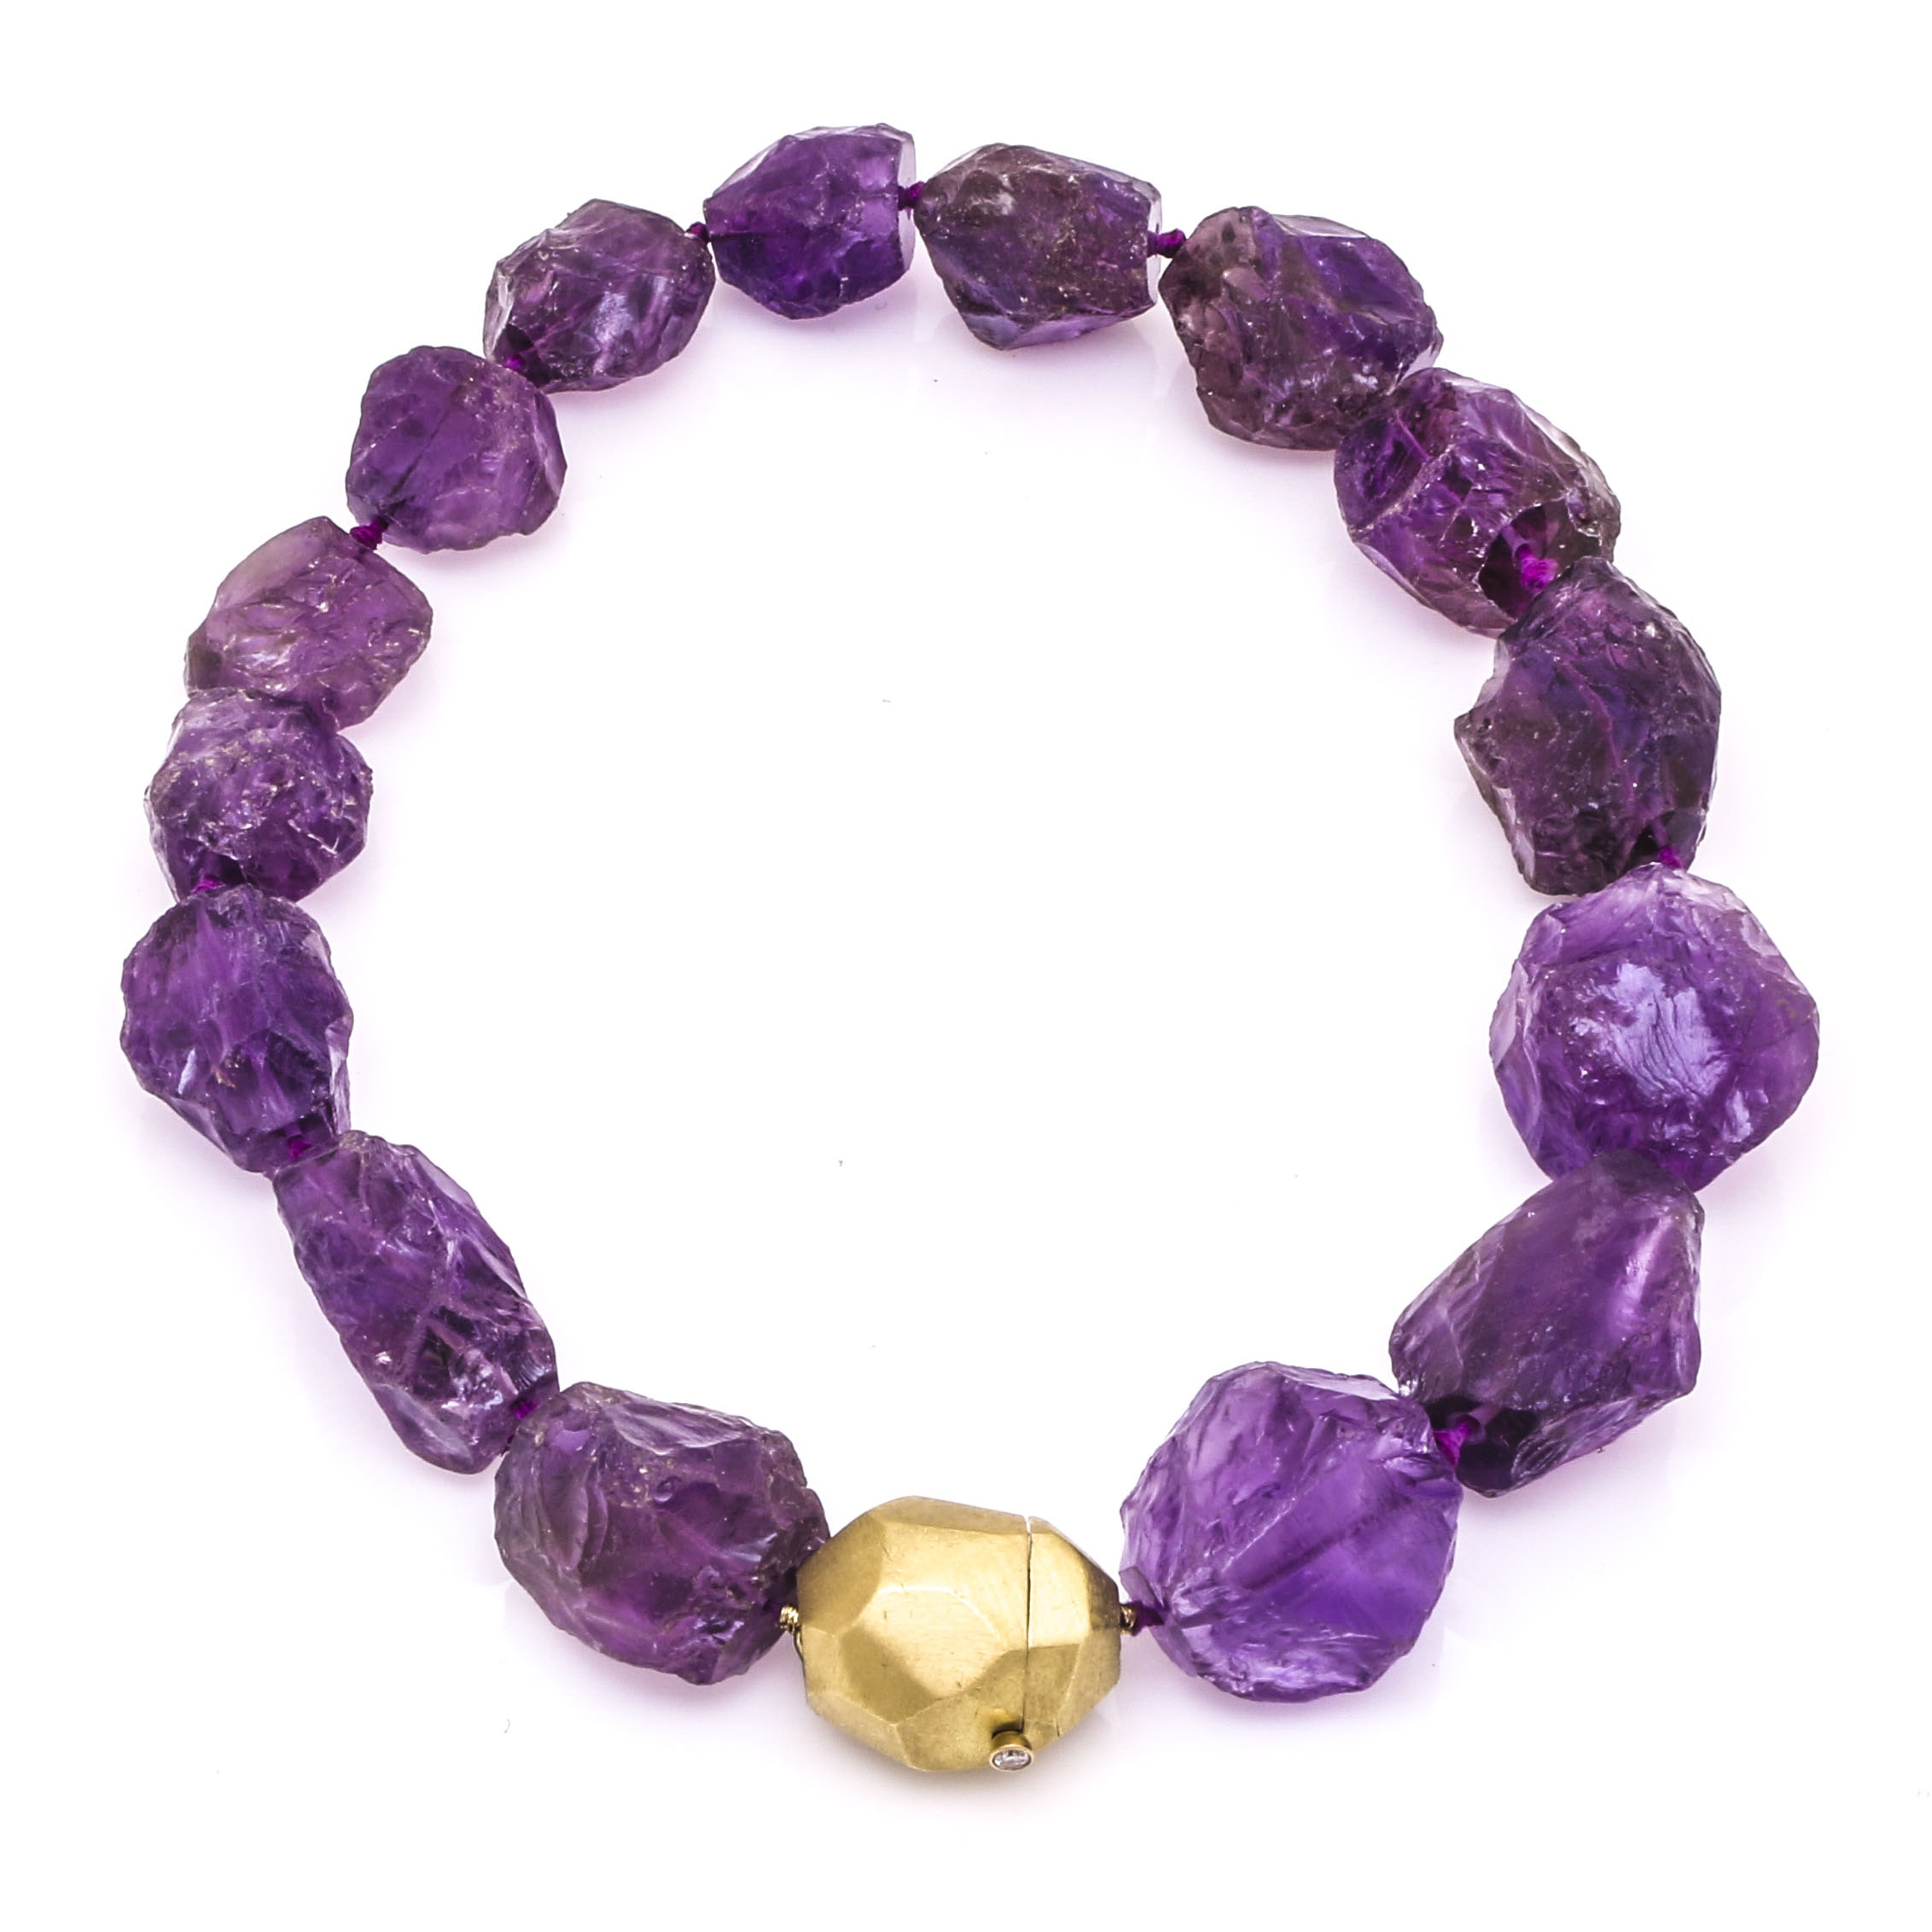 Amethyst Necklace with 18K Yellow Gold Clasp